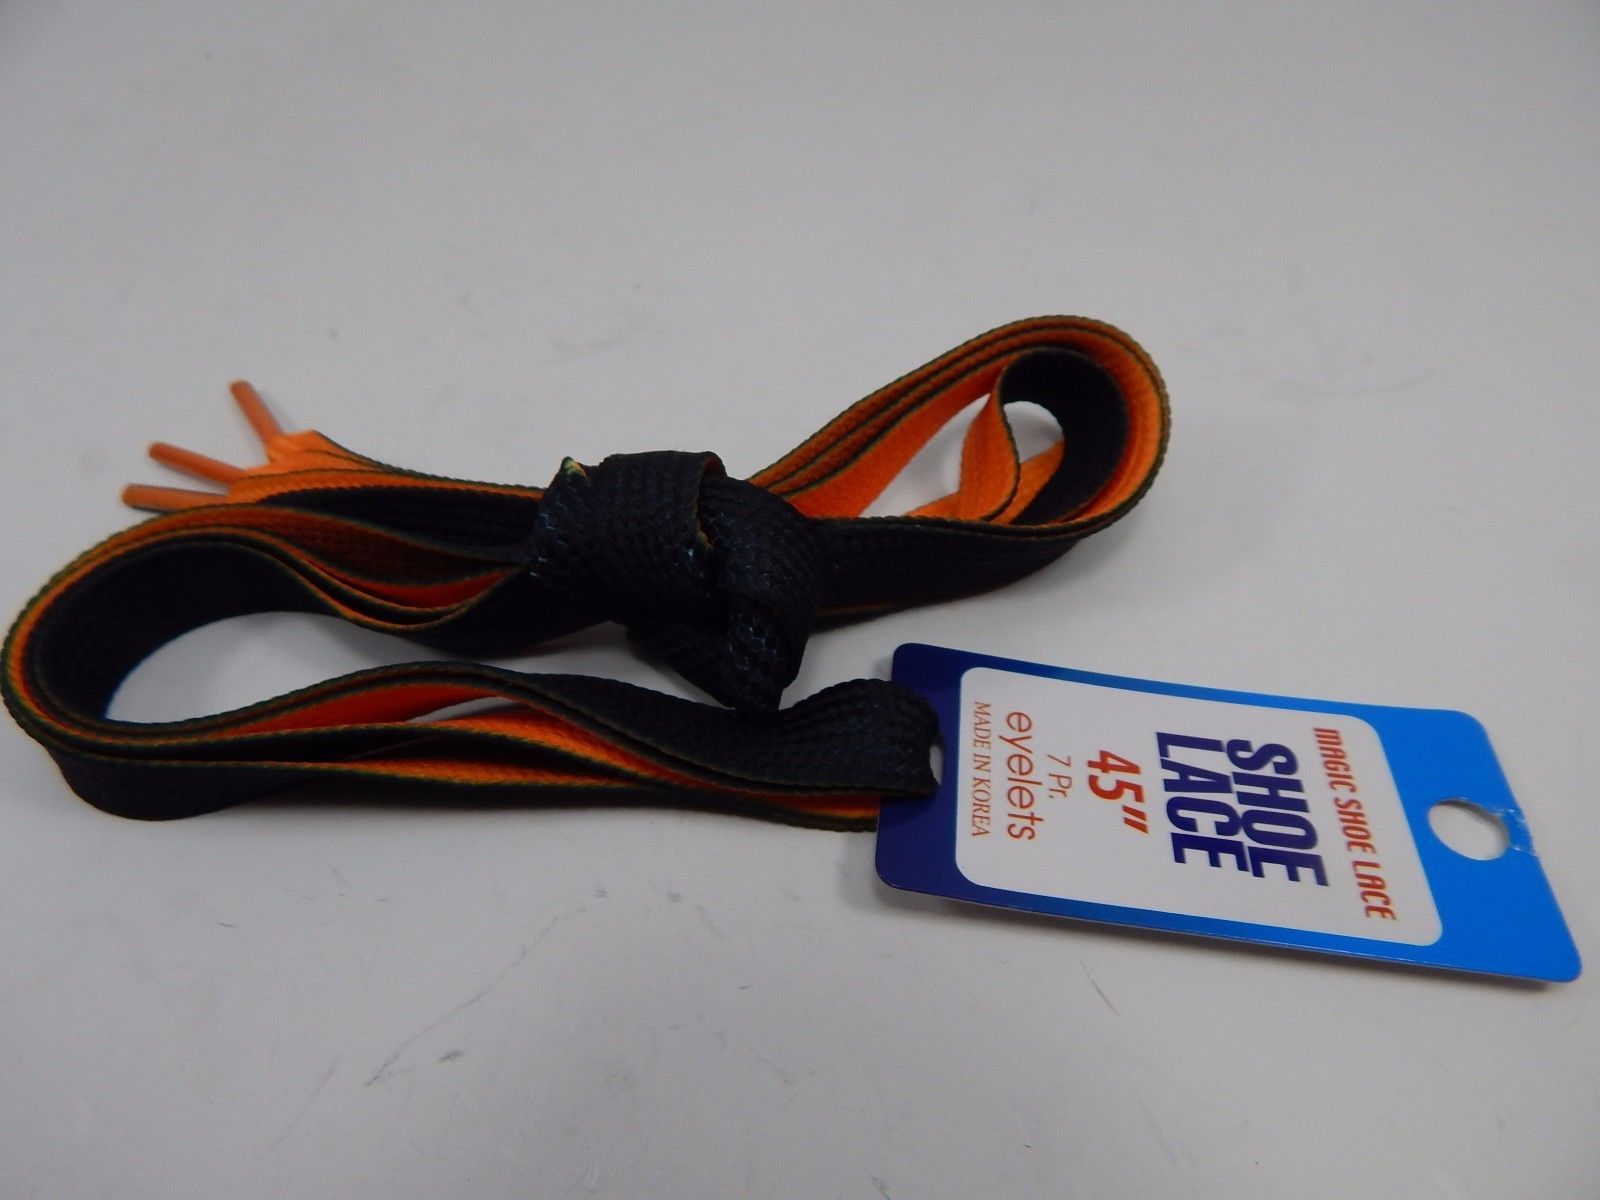 "Black & Orange Two-Tone Thick Fat Skater Shoe Shoe Laces 45"" in Inches"